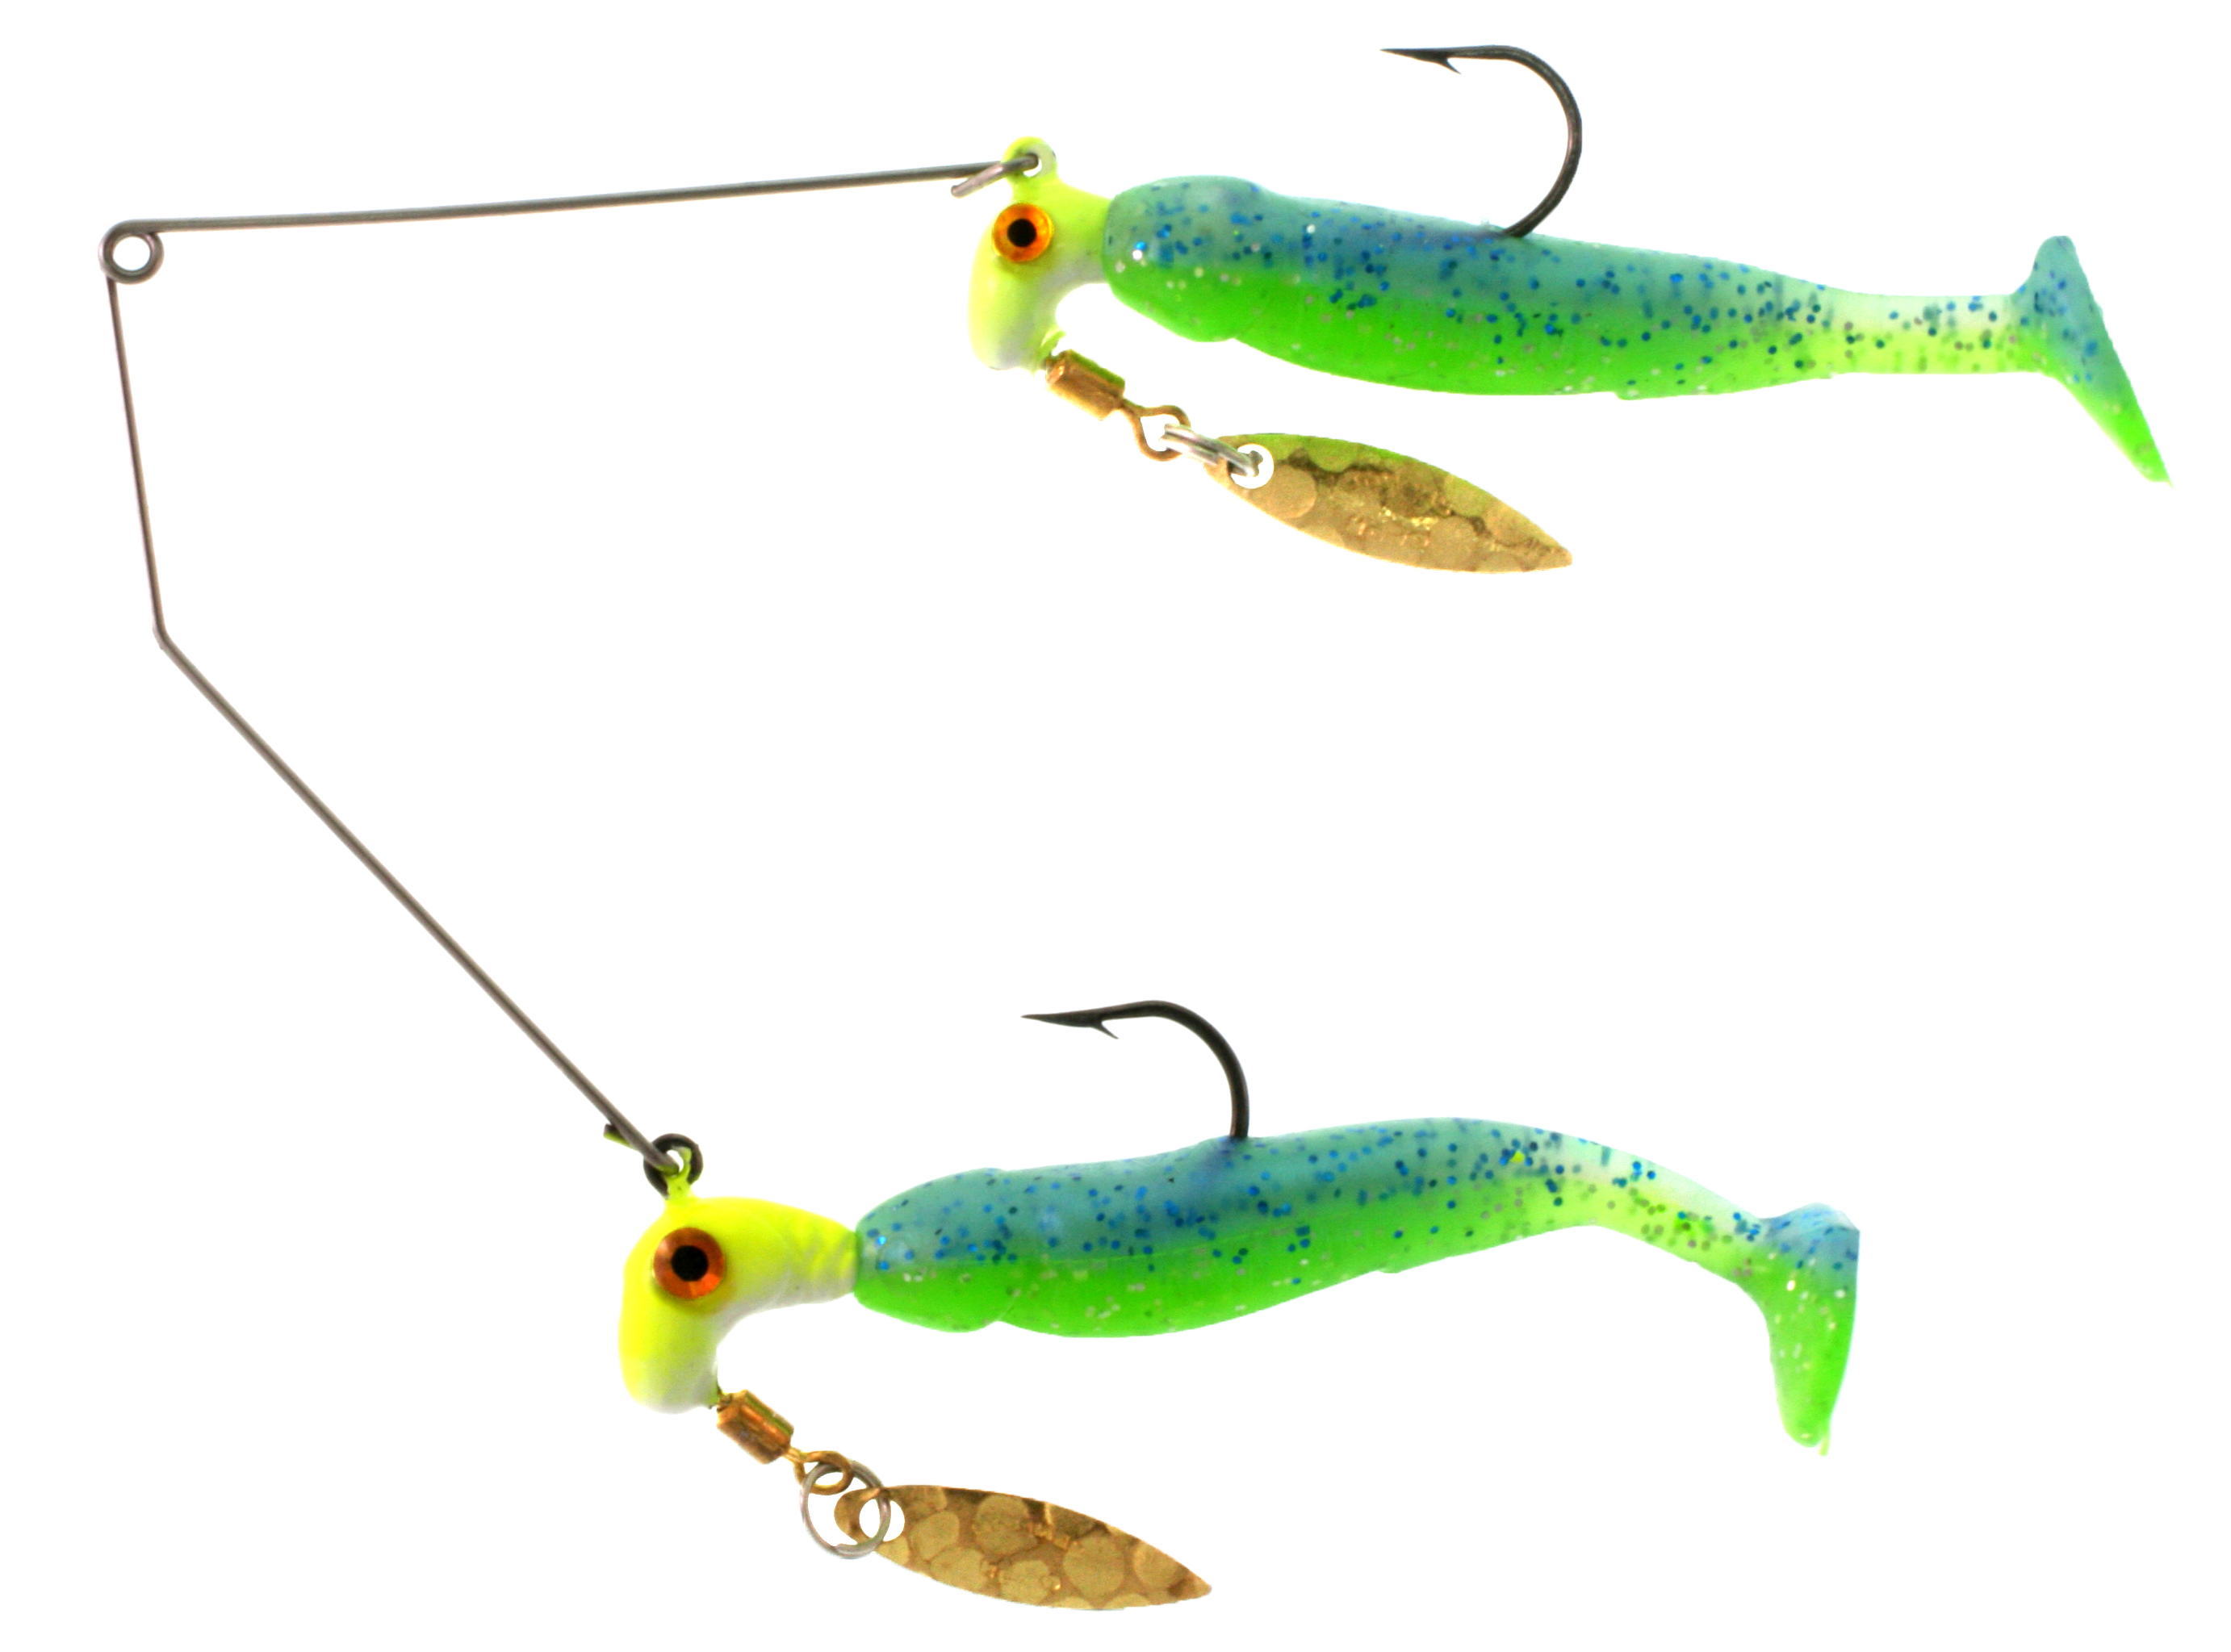 RBS02-093 Bang Shad Buffet Rig / 1/4oz. total weight  / Blue Che